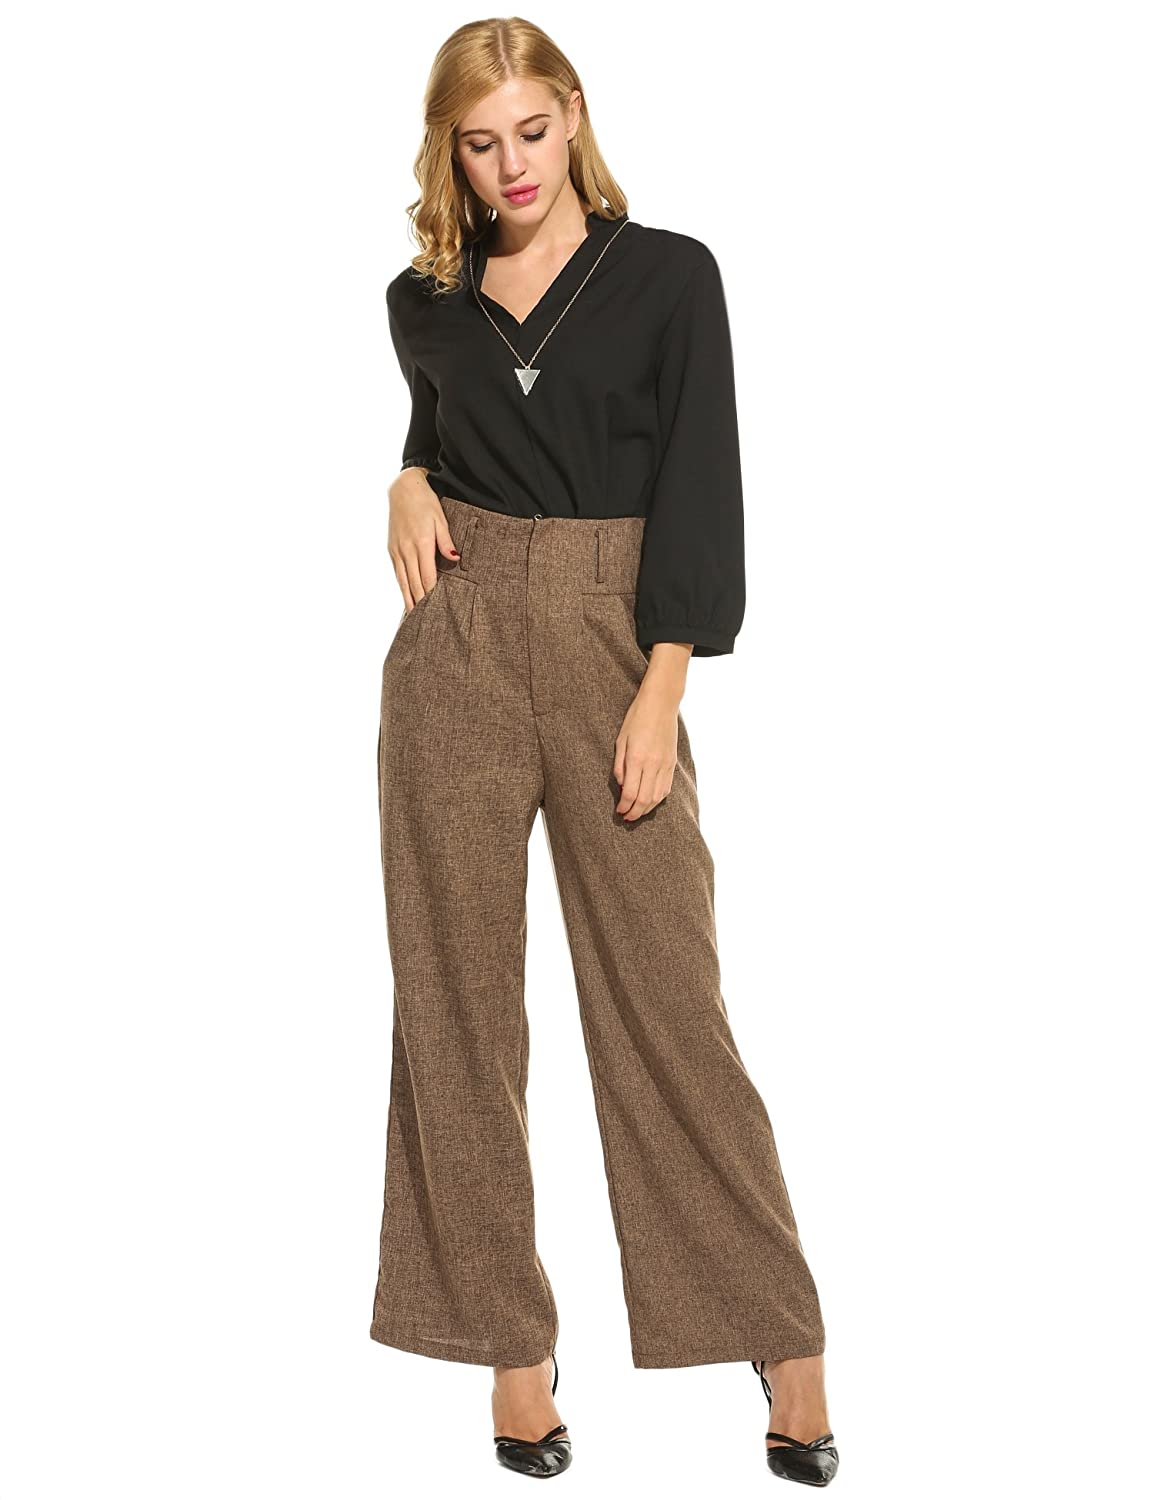 1940s Style Pants & Overalls- Wide Leg, High Waist Zeagoo Women Casual Superline Wide Flare Leg High Waist Zipper Solid Long Pants $25.99 AT vintagedancer.com